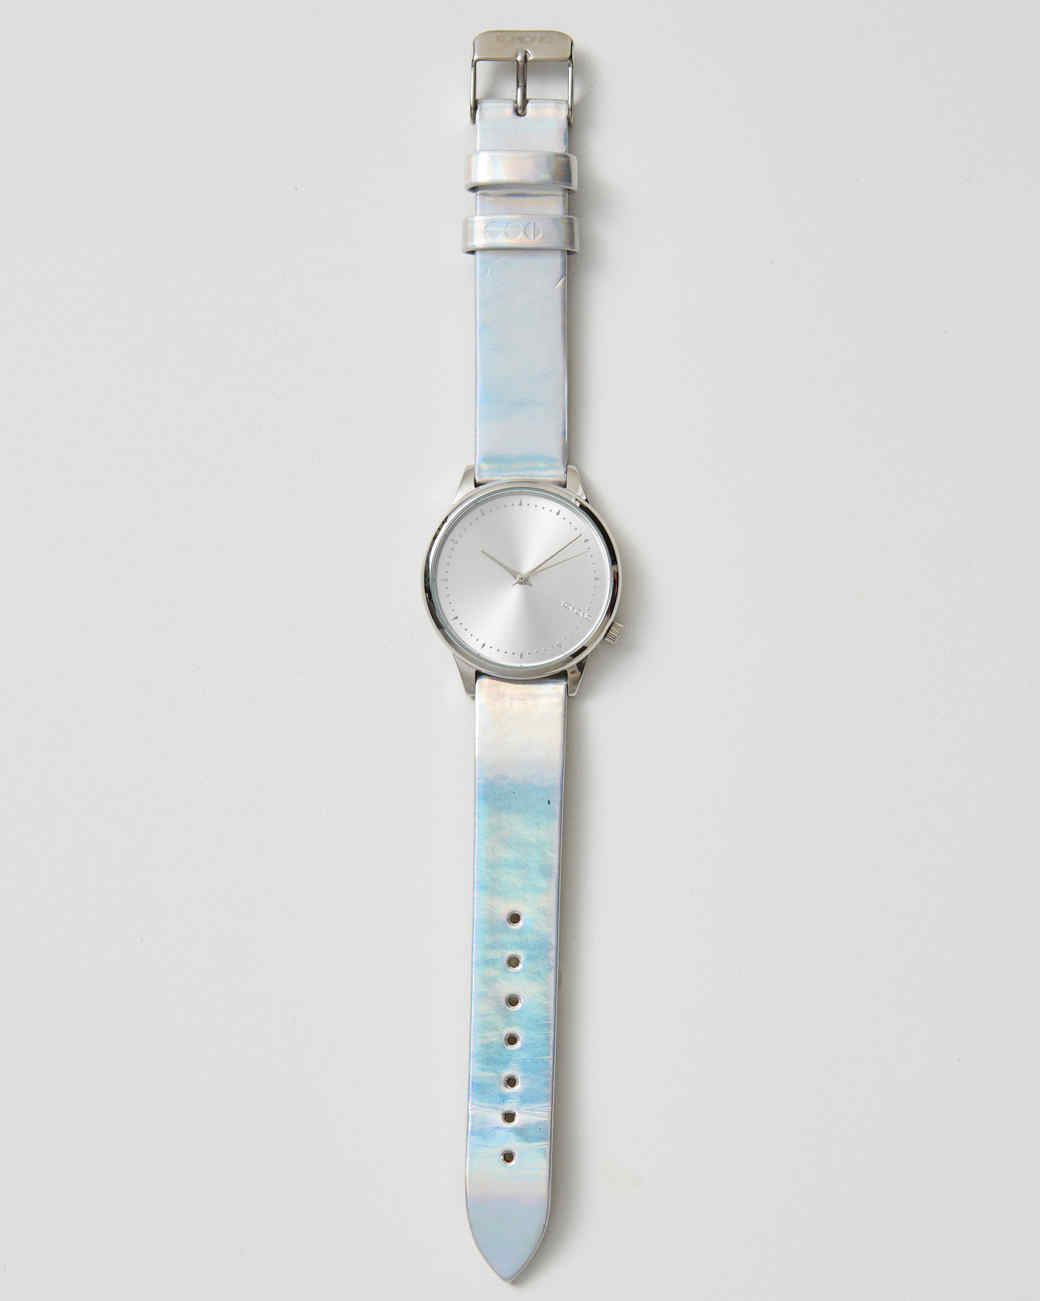 moma-silver-watch-141-d112494.jpg